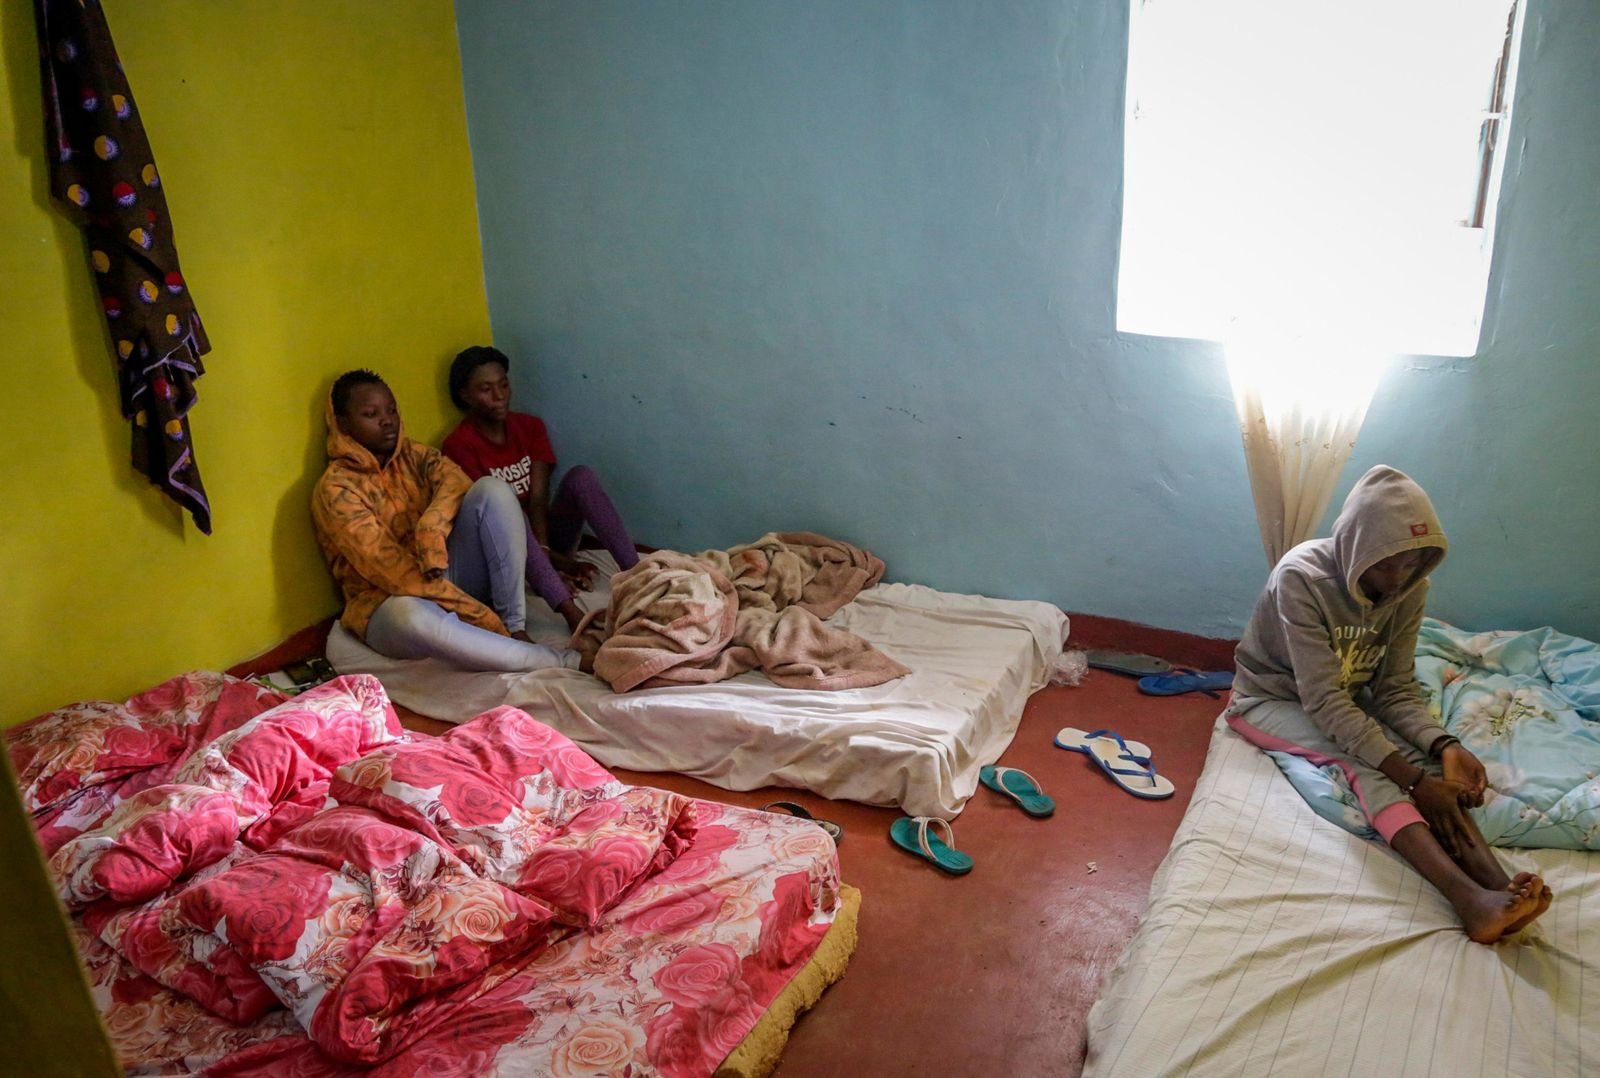 In this photo taken Tuesday, May 28, 2019, LGBT refugee Nina Muregwa, 17, left, from Burundi, who says she left Burundi after her lover's mother threatened to kill her, sits with others in the house where they take shelter in a low-income neighborhood of the capital Nairobi, Kenya(AP Photo/Khalil Senosi)